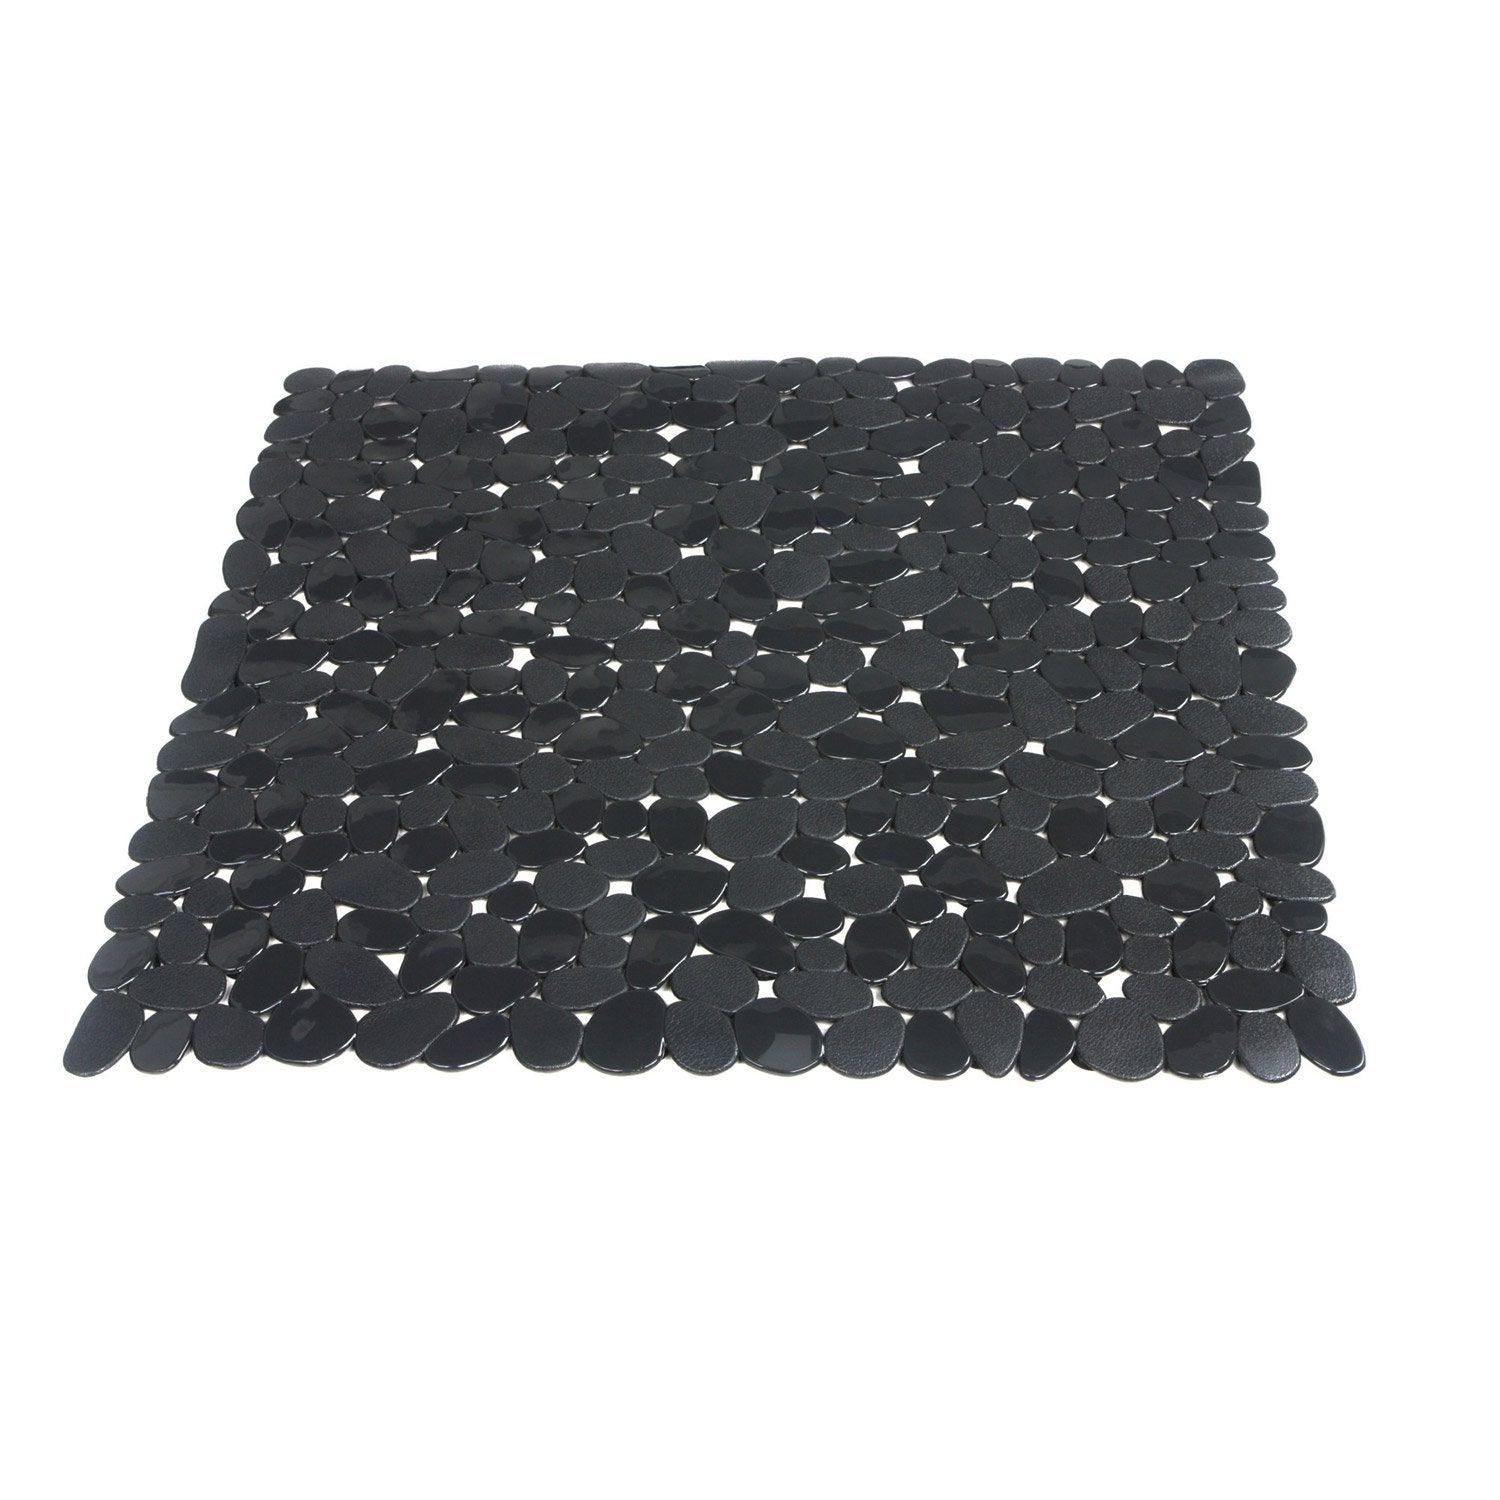 tapis antid rapant gris pour douche stone sensea leroy merlin. Black Bedroom Furniture Sets. Home Design Ideas